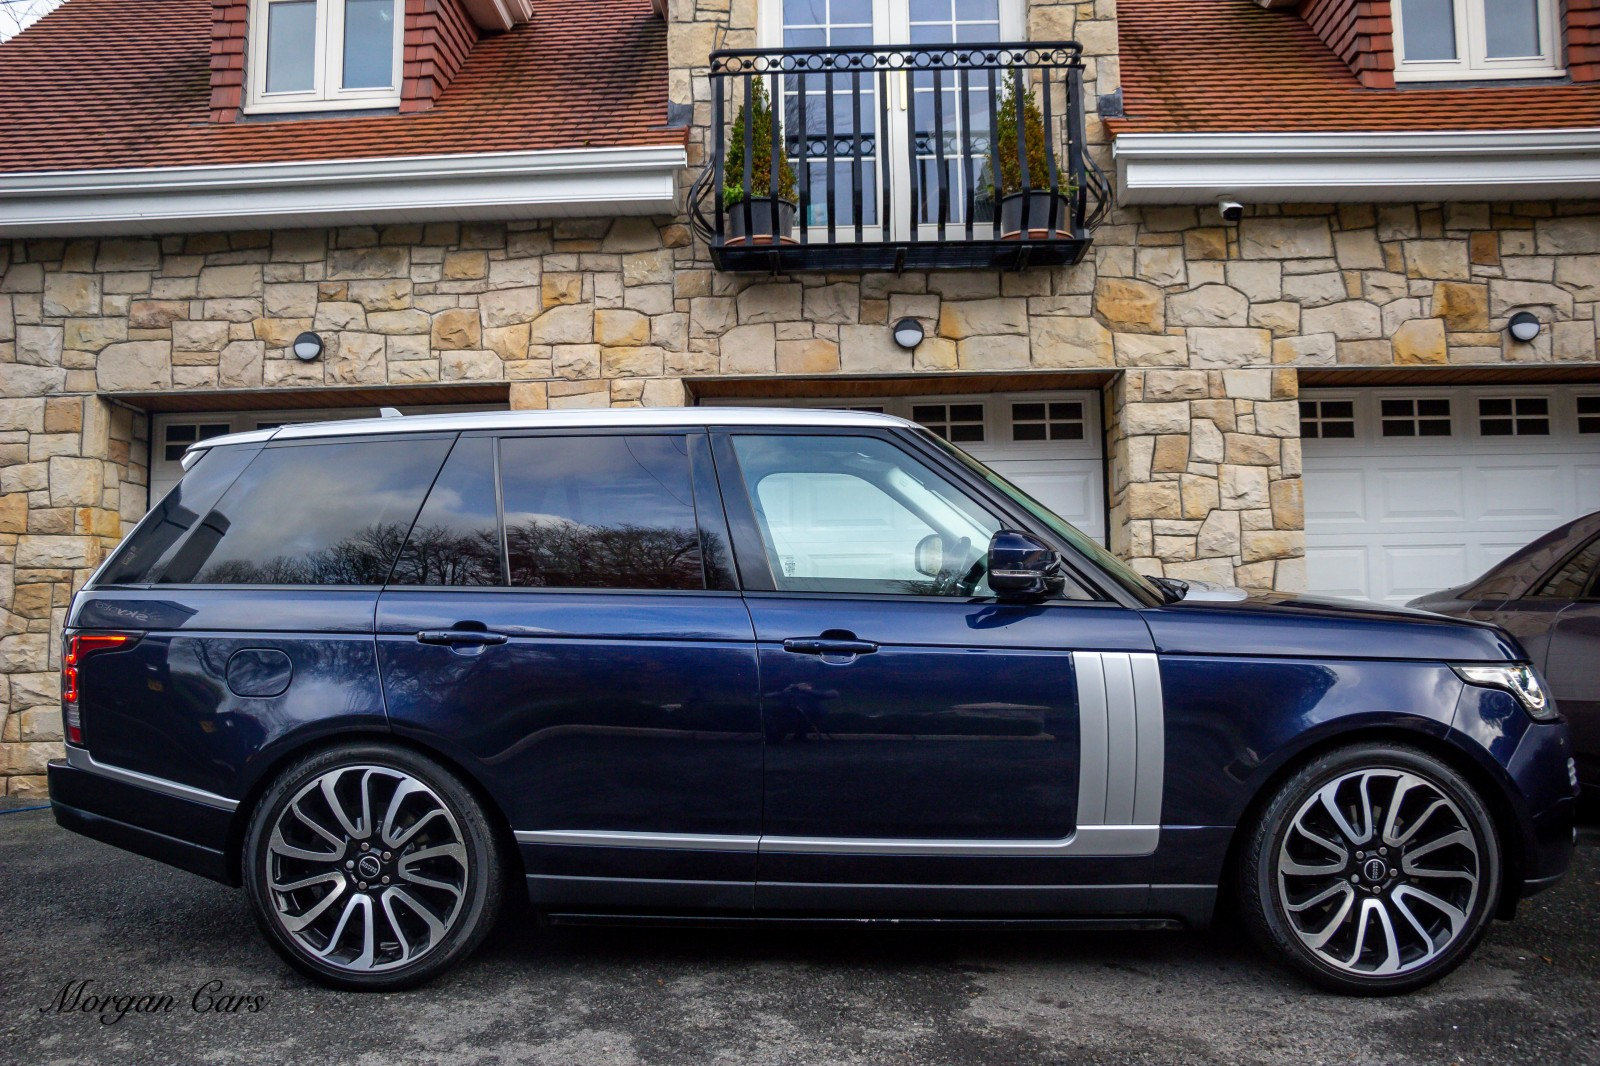 2016 Land Rover Range Rover 3.0 TDV6 VOGUE Diesel Automatic – Morgan Cars 9 Mound Road, Warrenpoint, Newry BT34 3LW, UK full